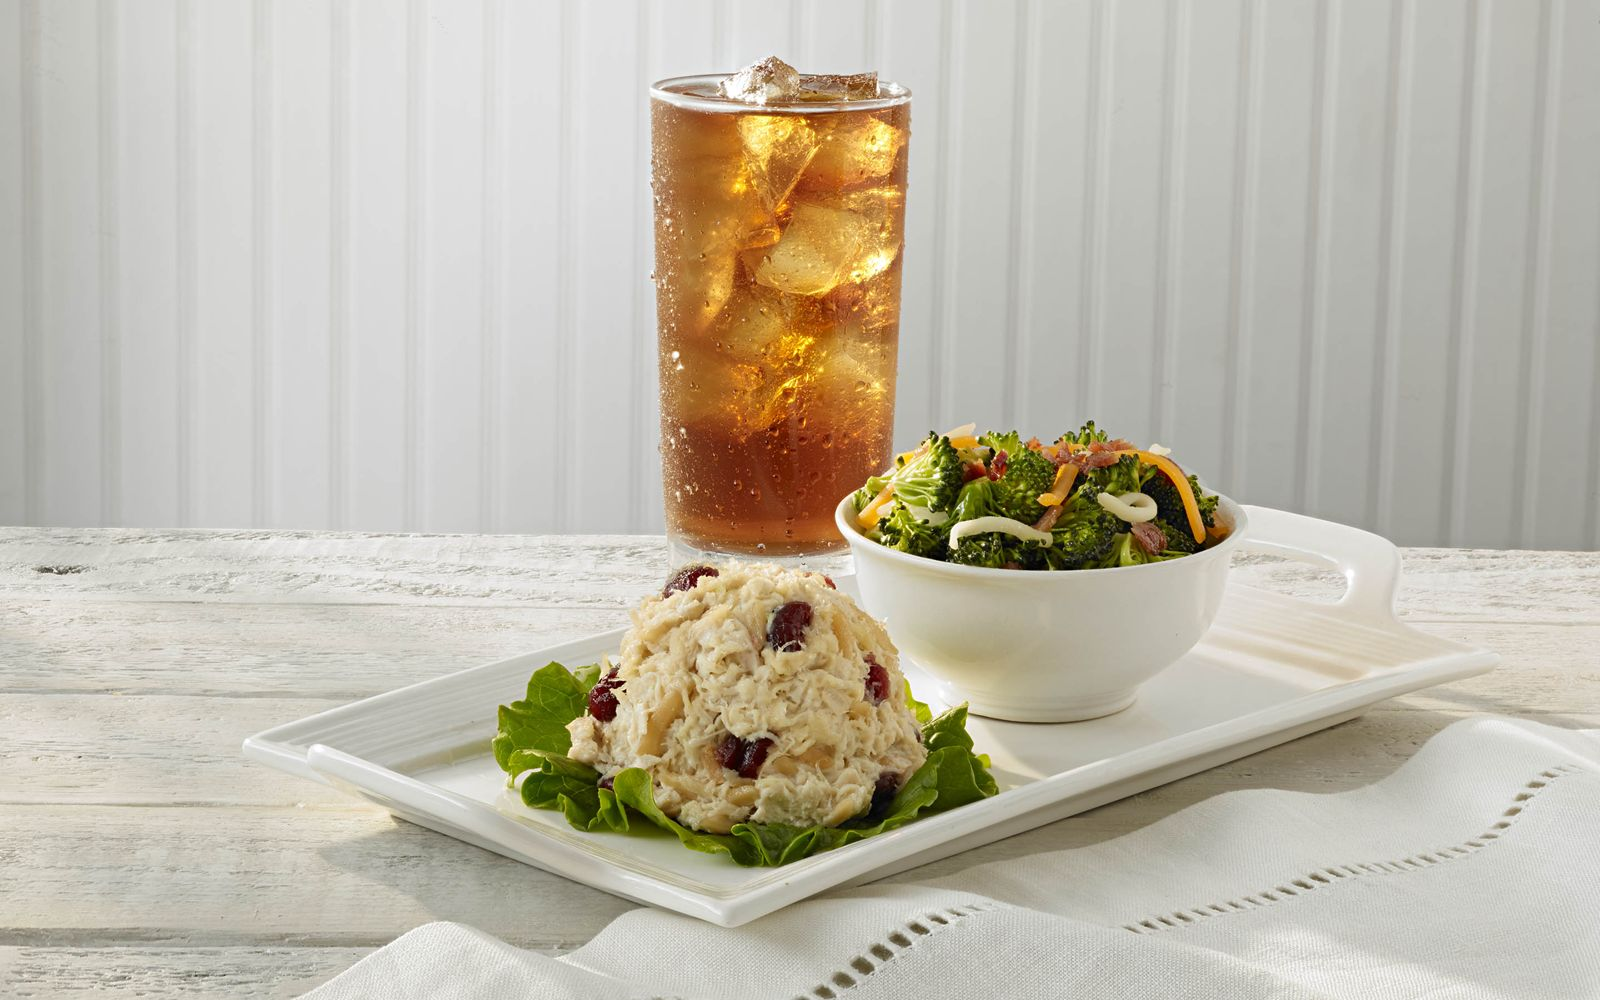 Chicken Salad Chick to Open in Bellevue, Tennessee